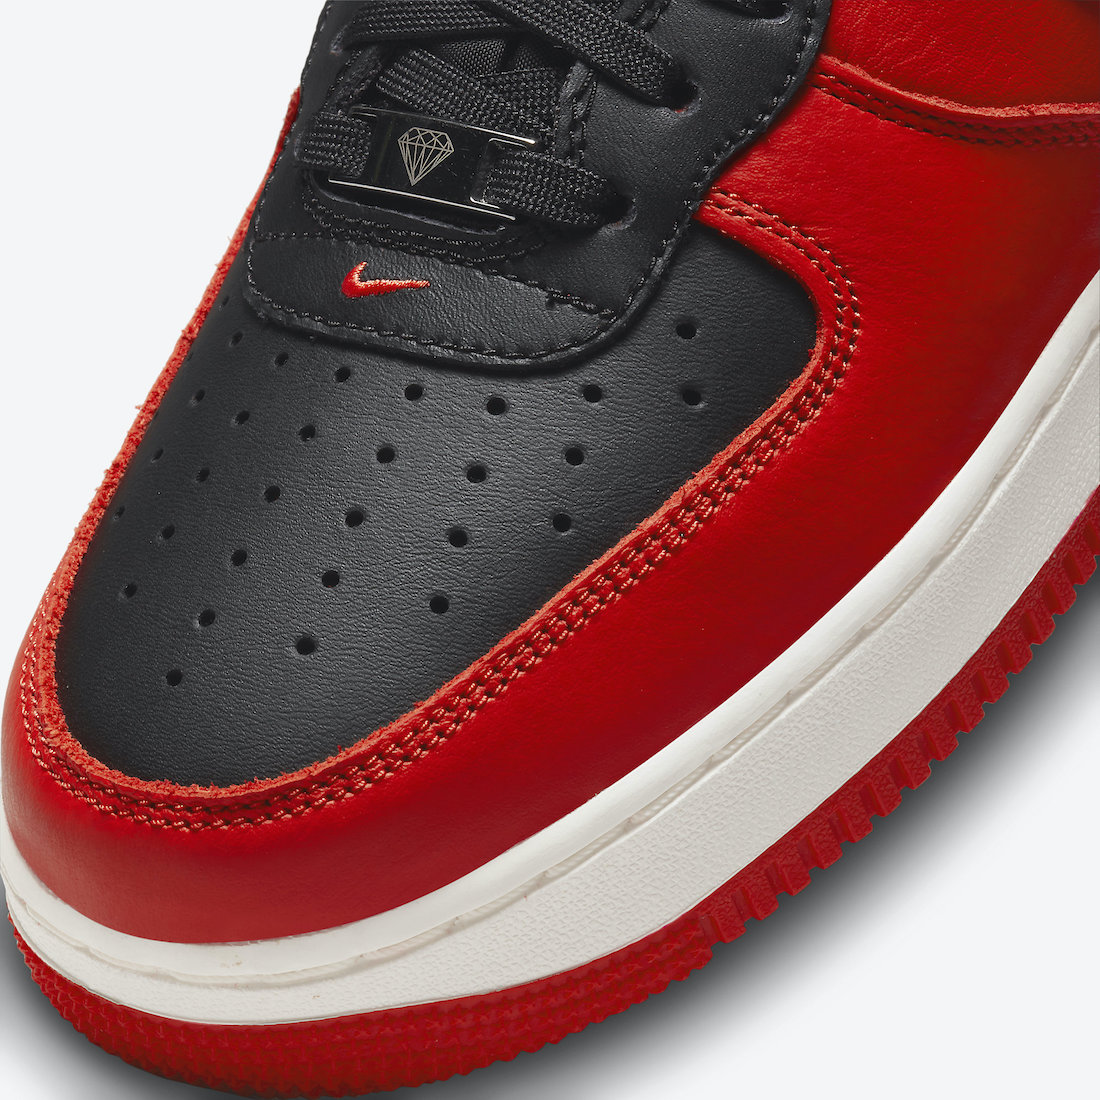 NBA Nike Air Force 1 High Black Chile Red White Sail DC8870-001 Release Date